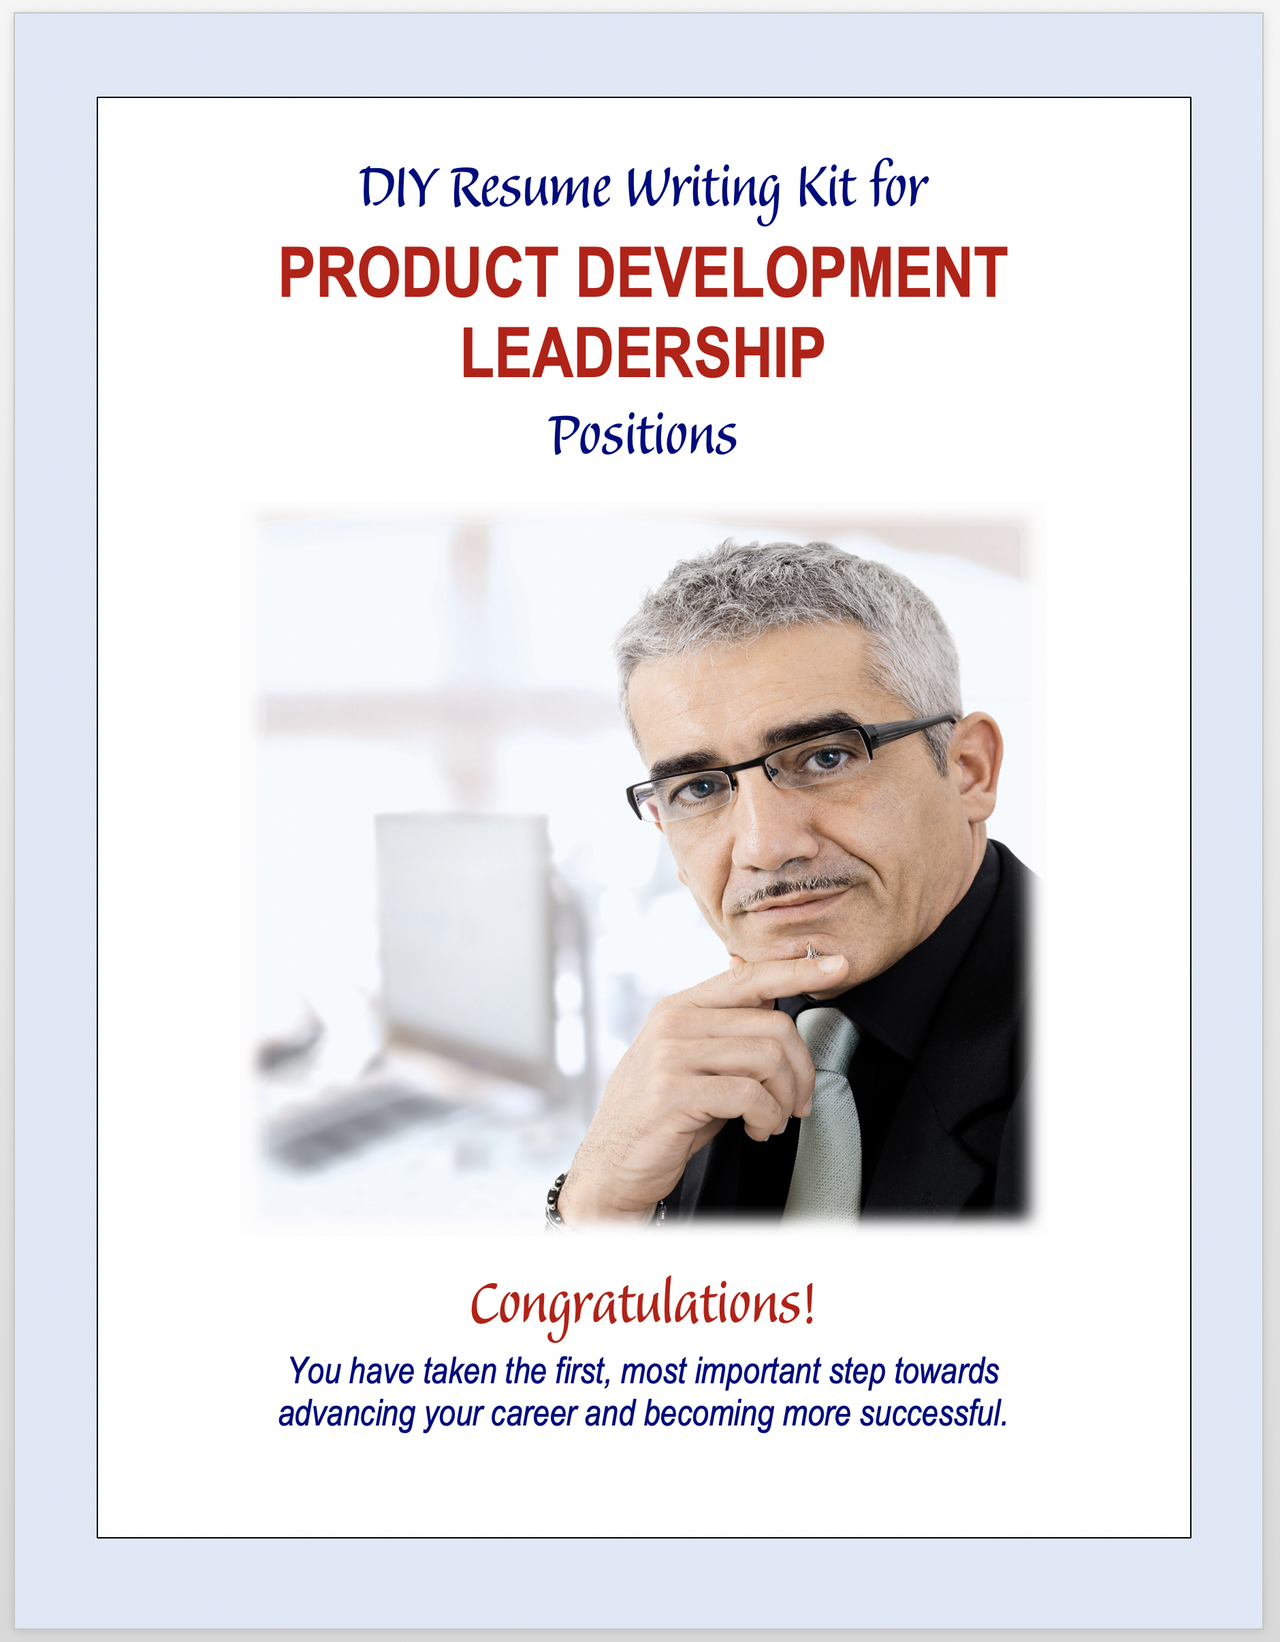 product development leadership.png